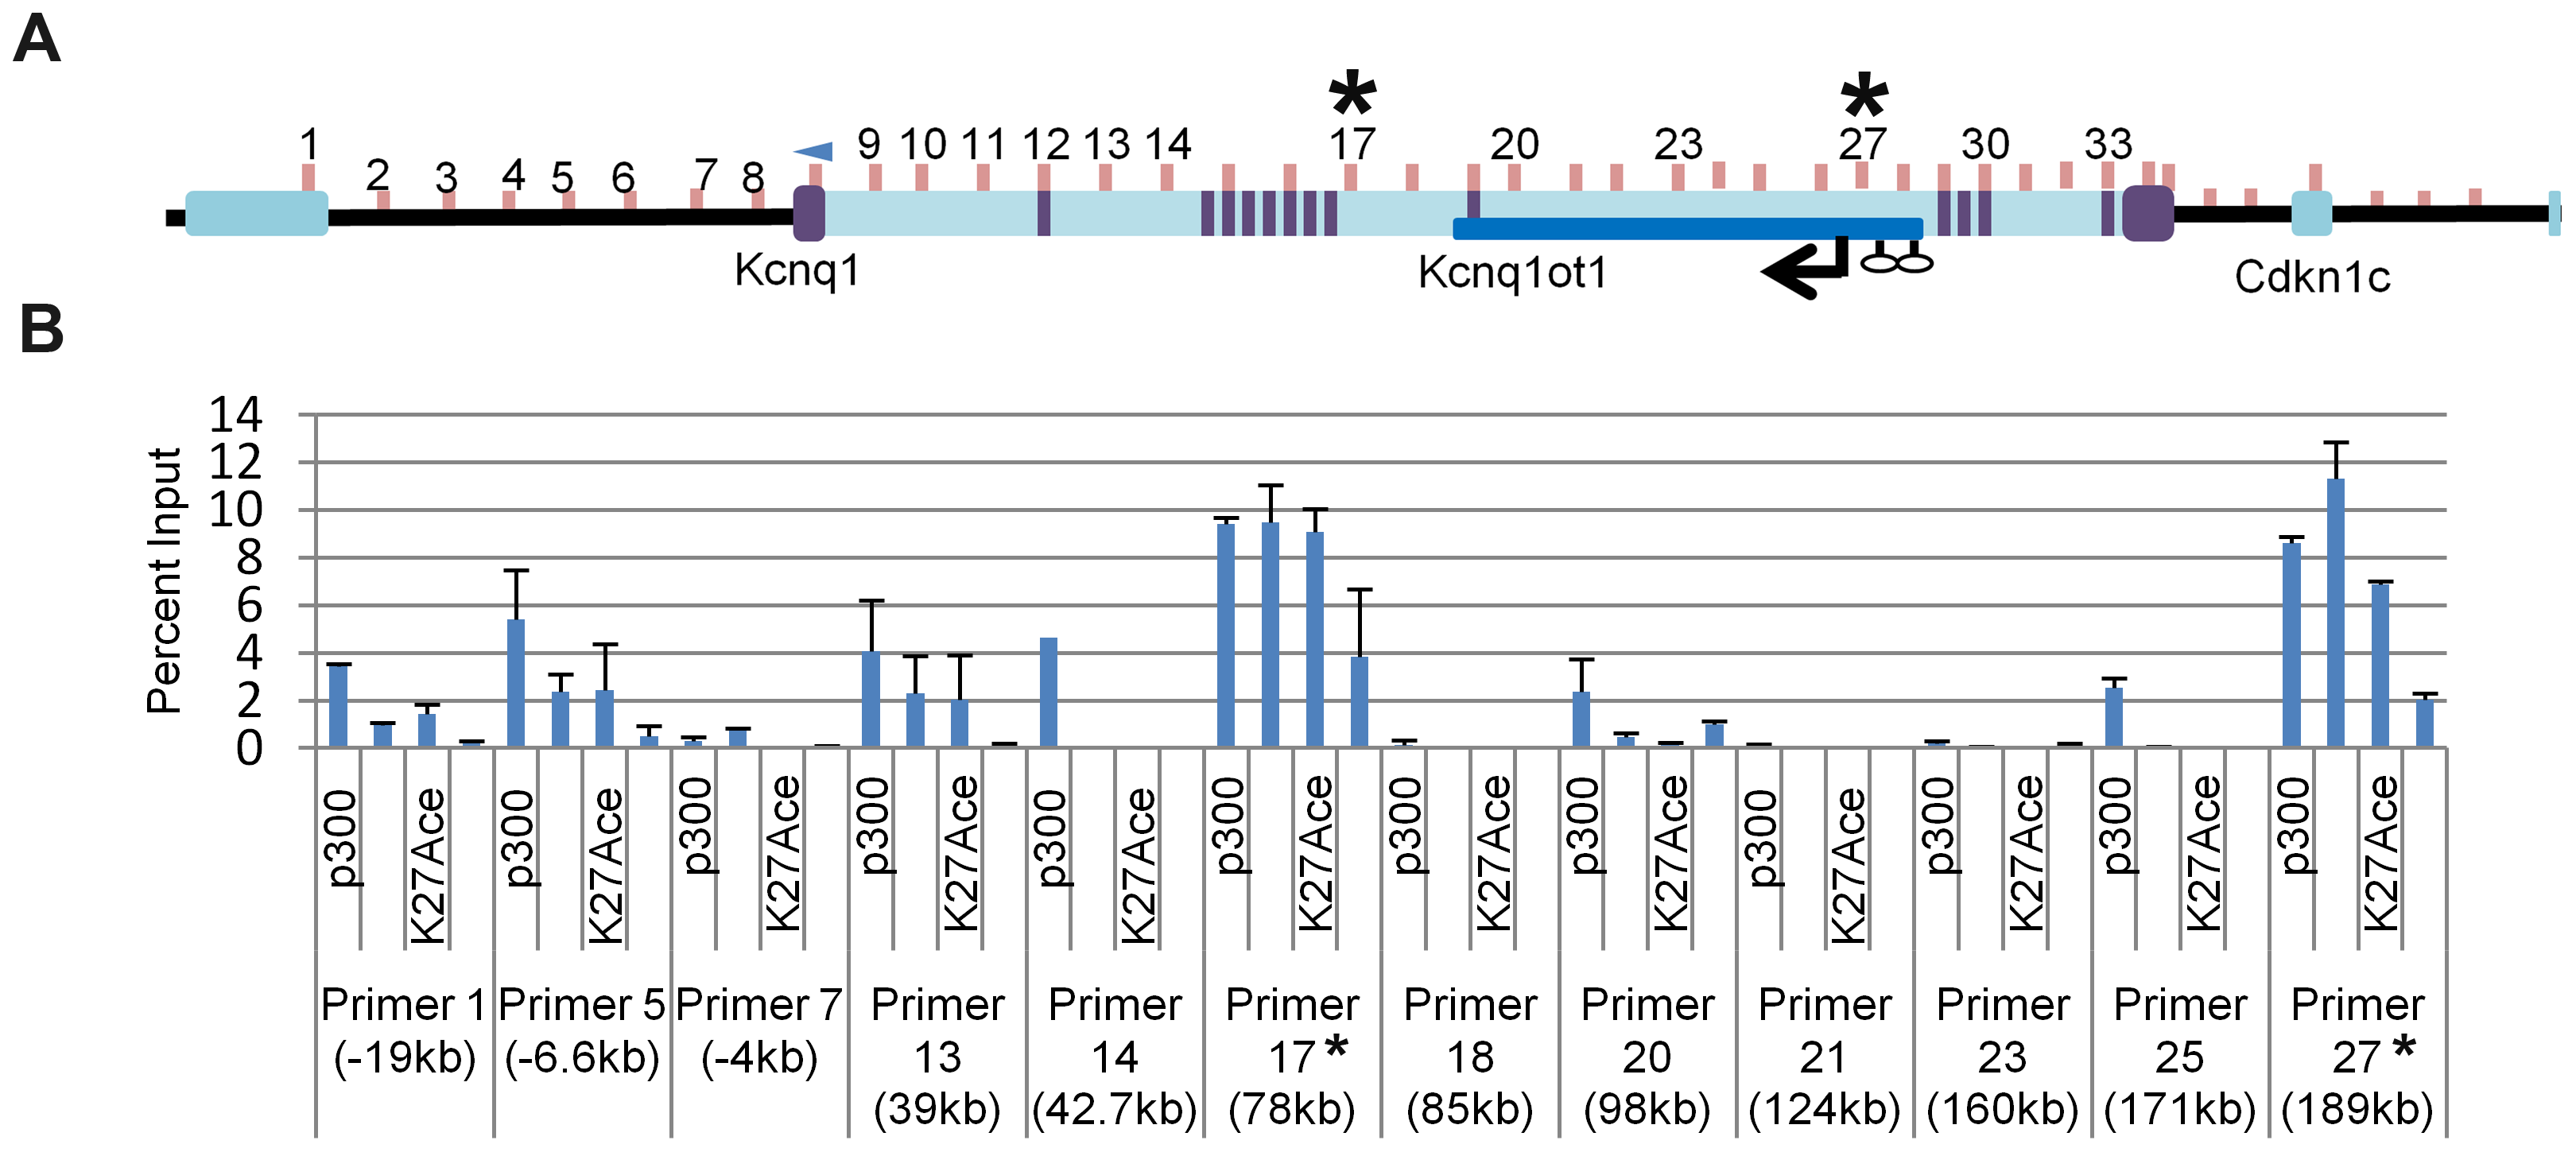 Chromatin immunoprecipitation (ChIP) of selected regions of the <i>Kcnq1</i> gene.